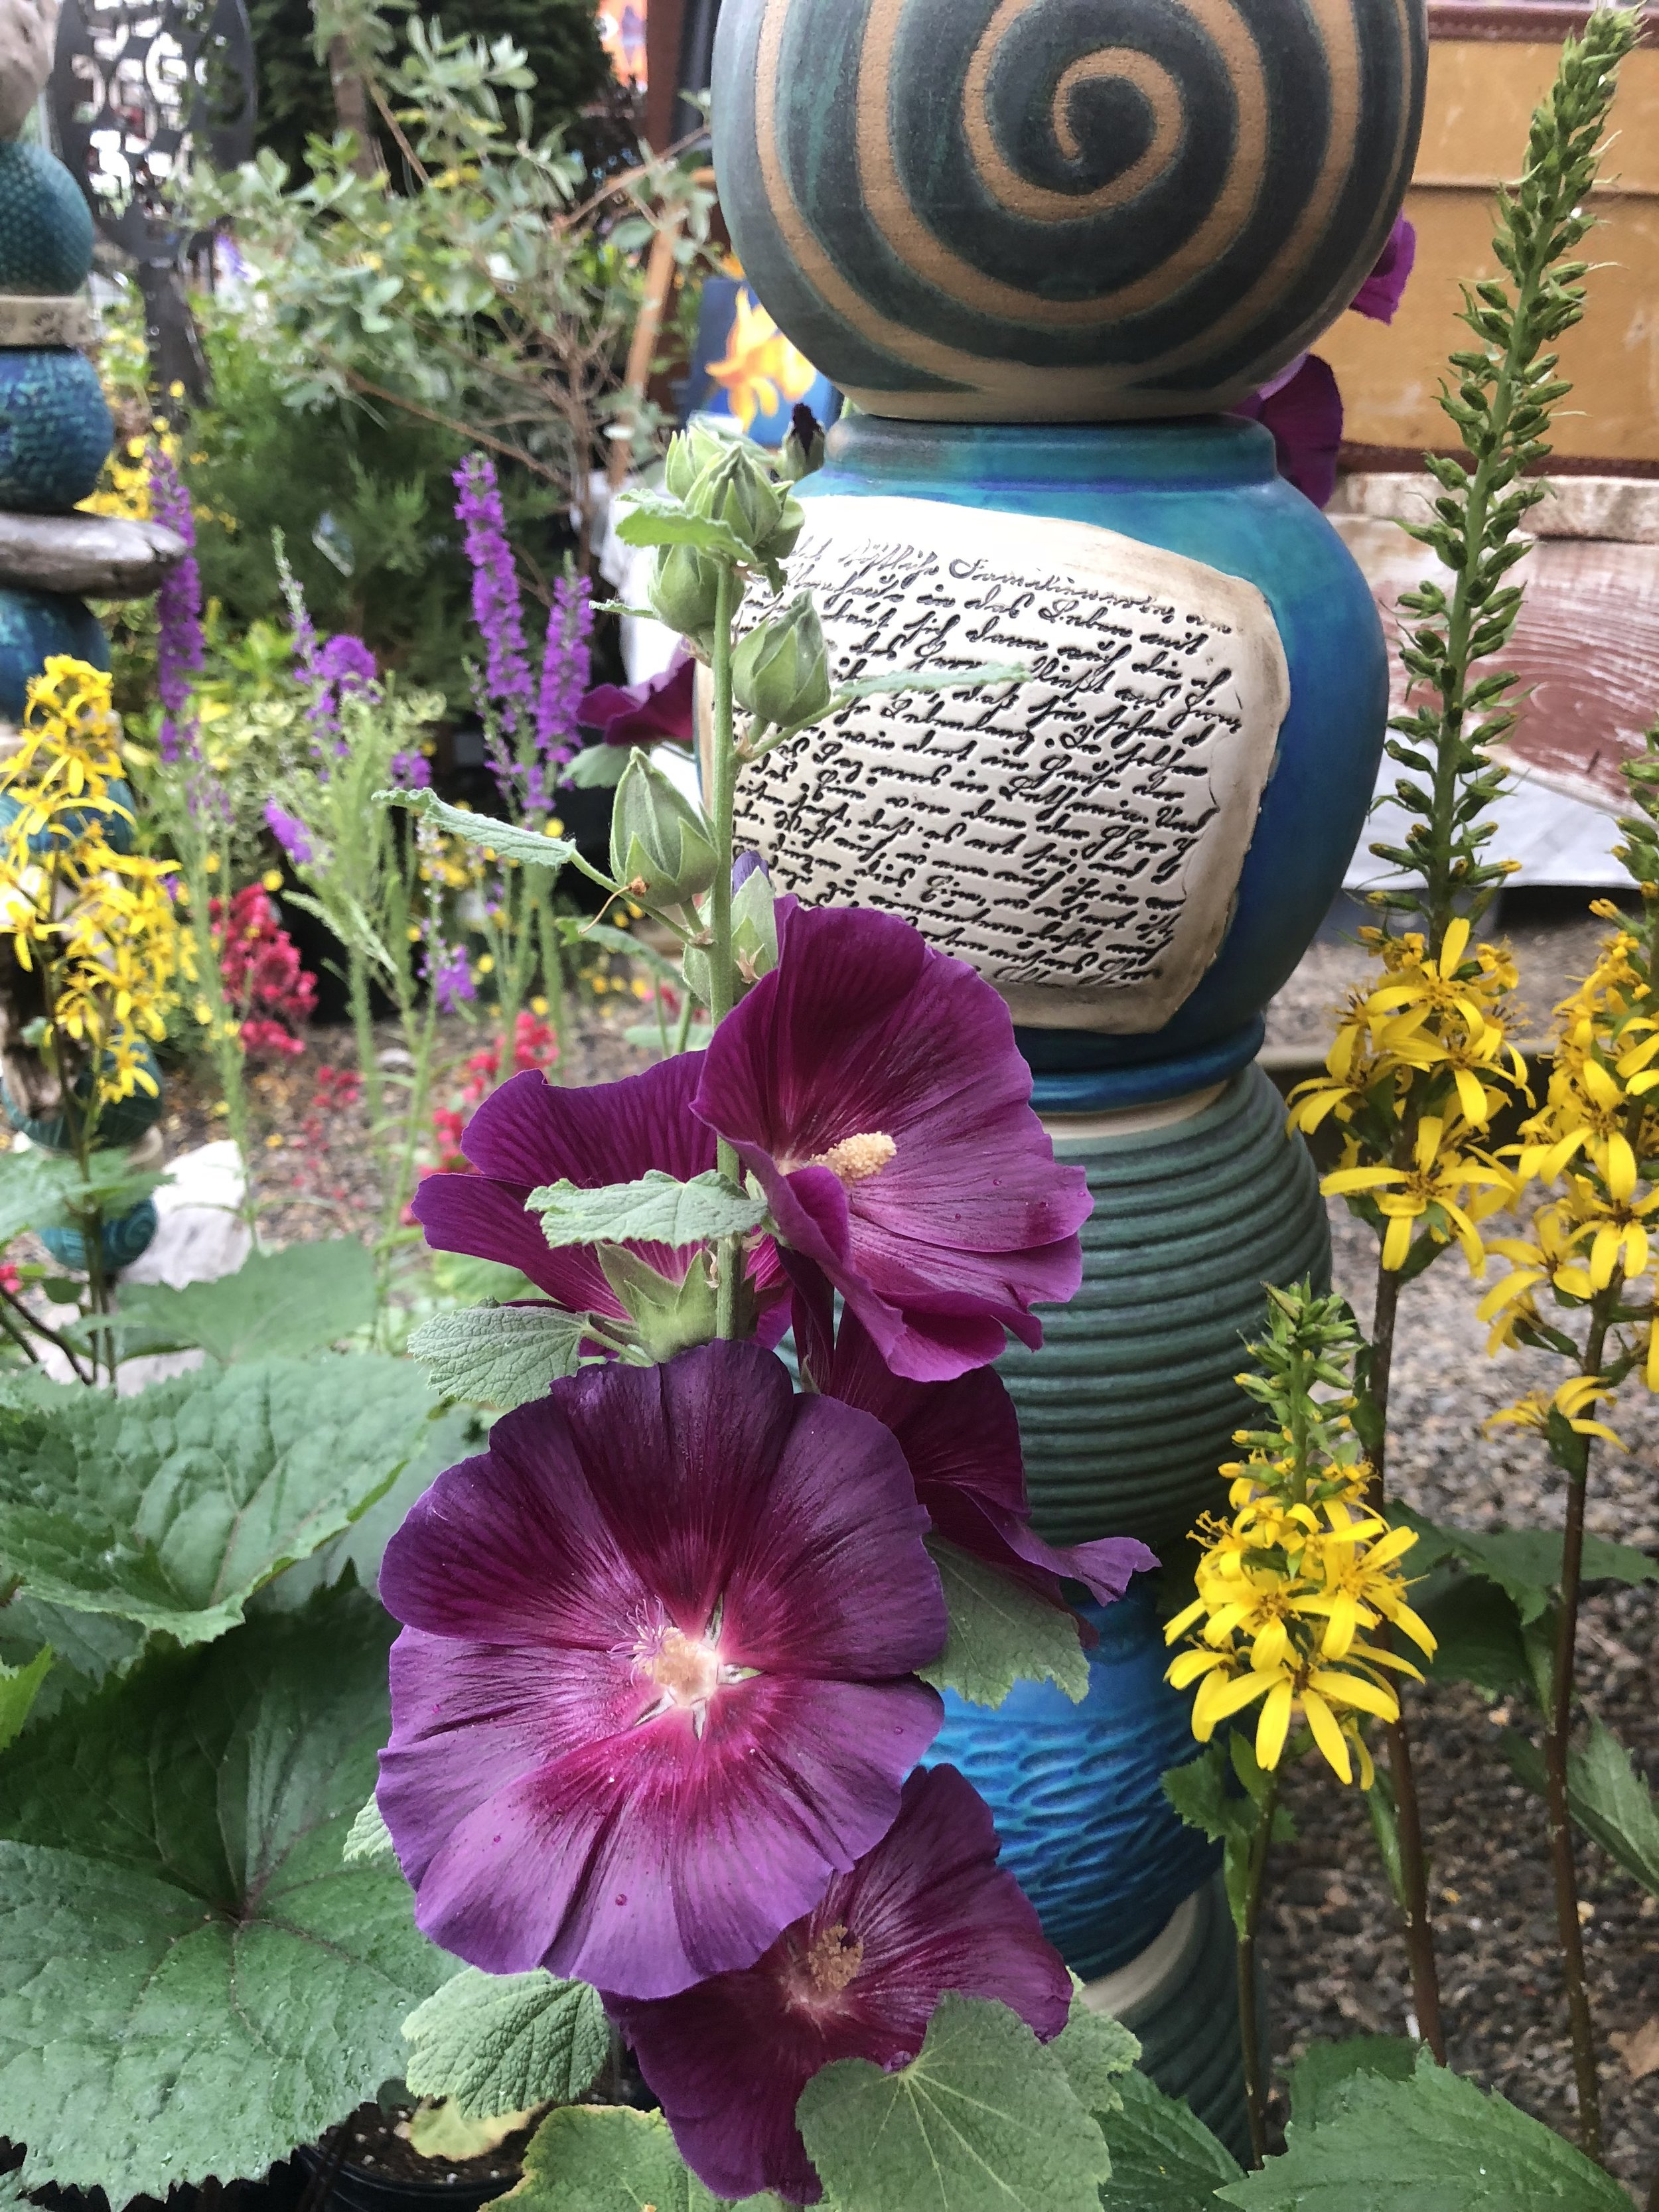 CLAY IN THE GARDEN - My garden is an experiment in community building. From the pollinator gardens to the now mature food forest that provides food for our family and beyond